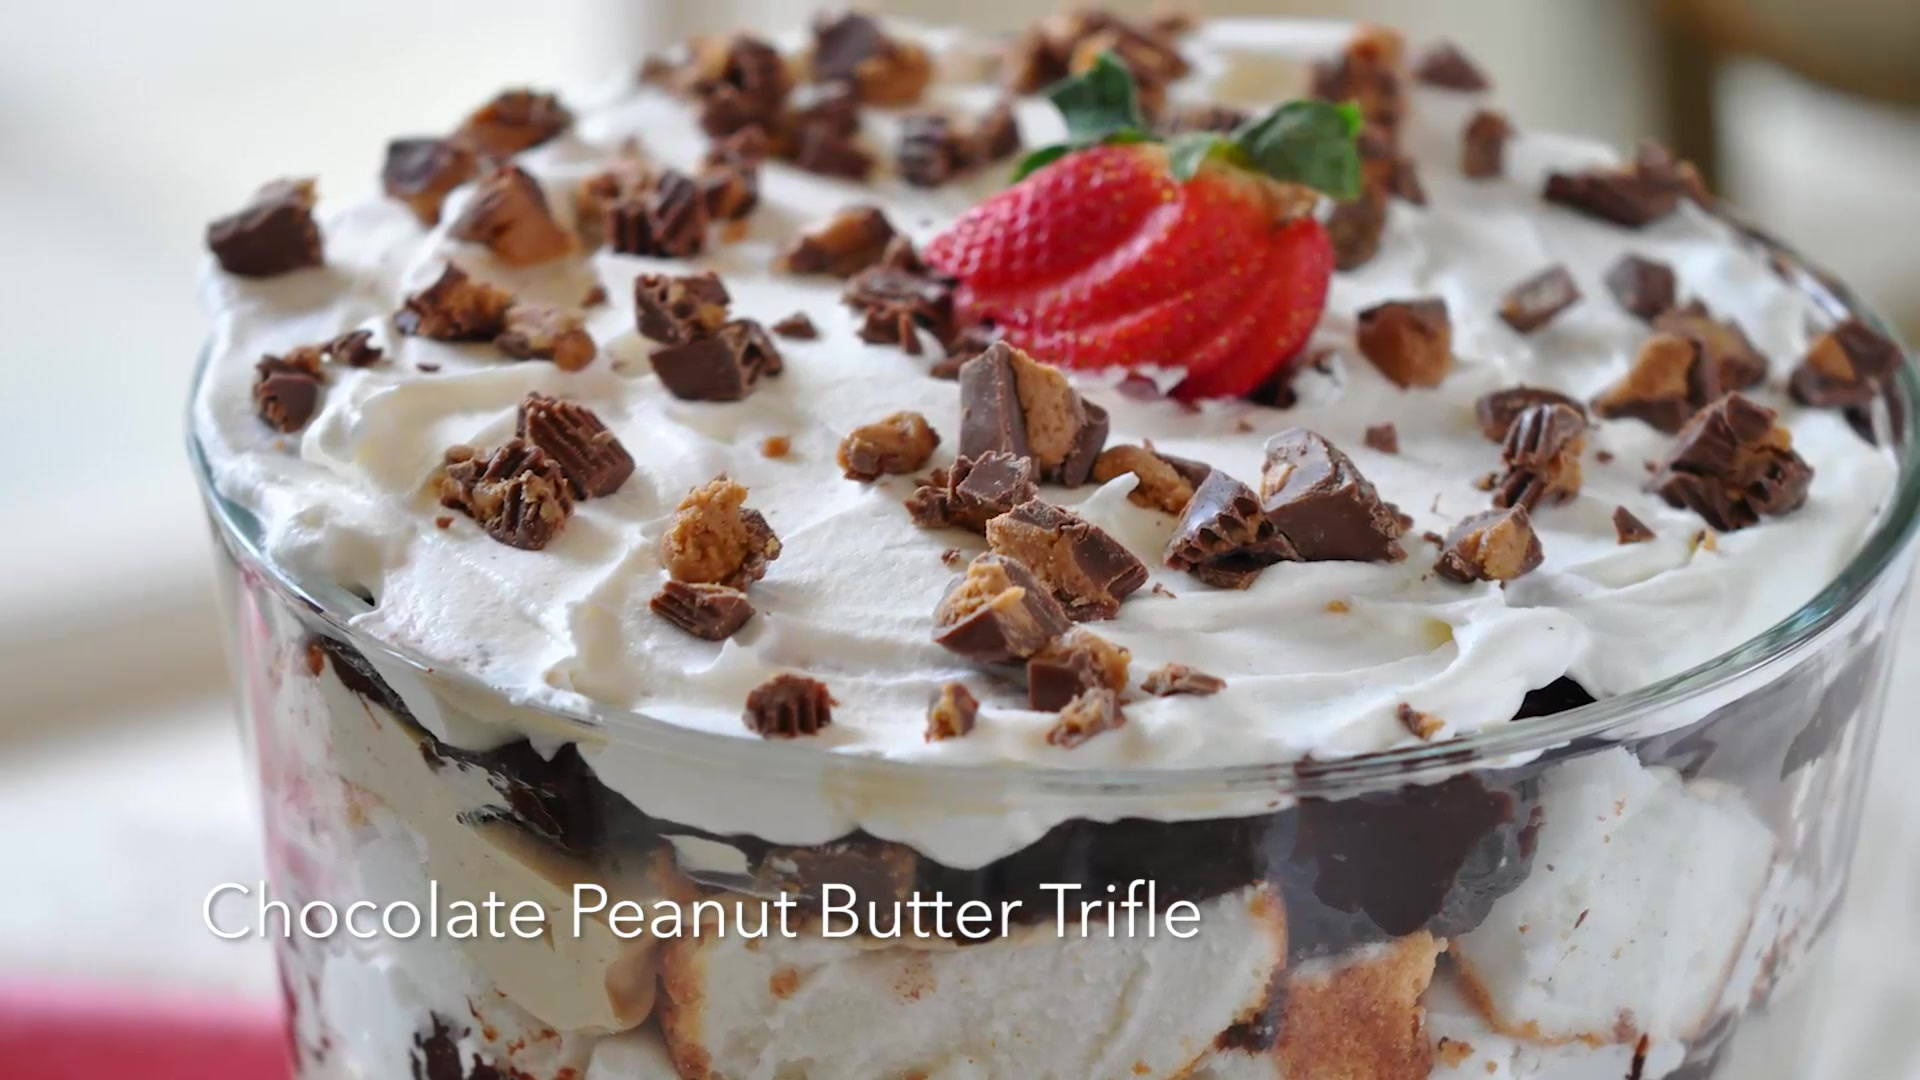 How to Make Chocolate Peanut Butter Trifle